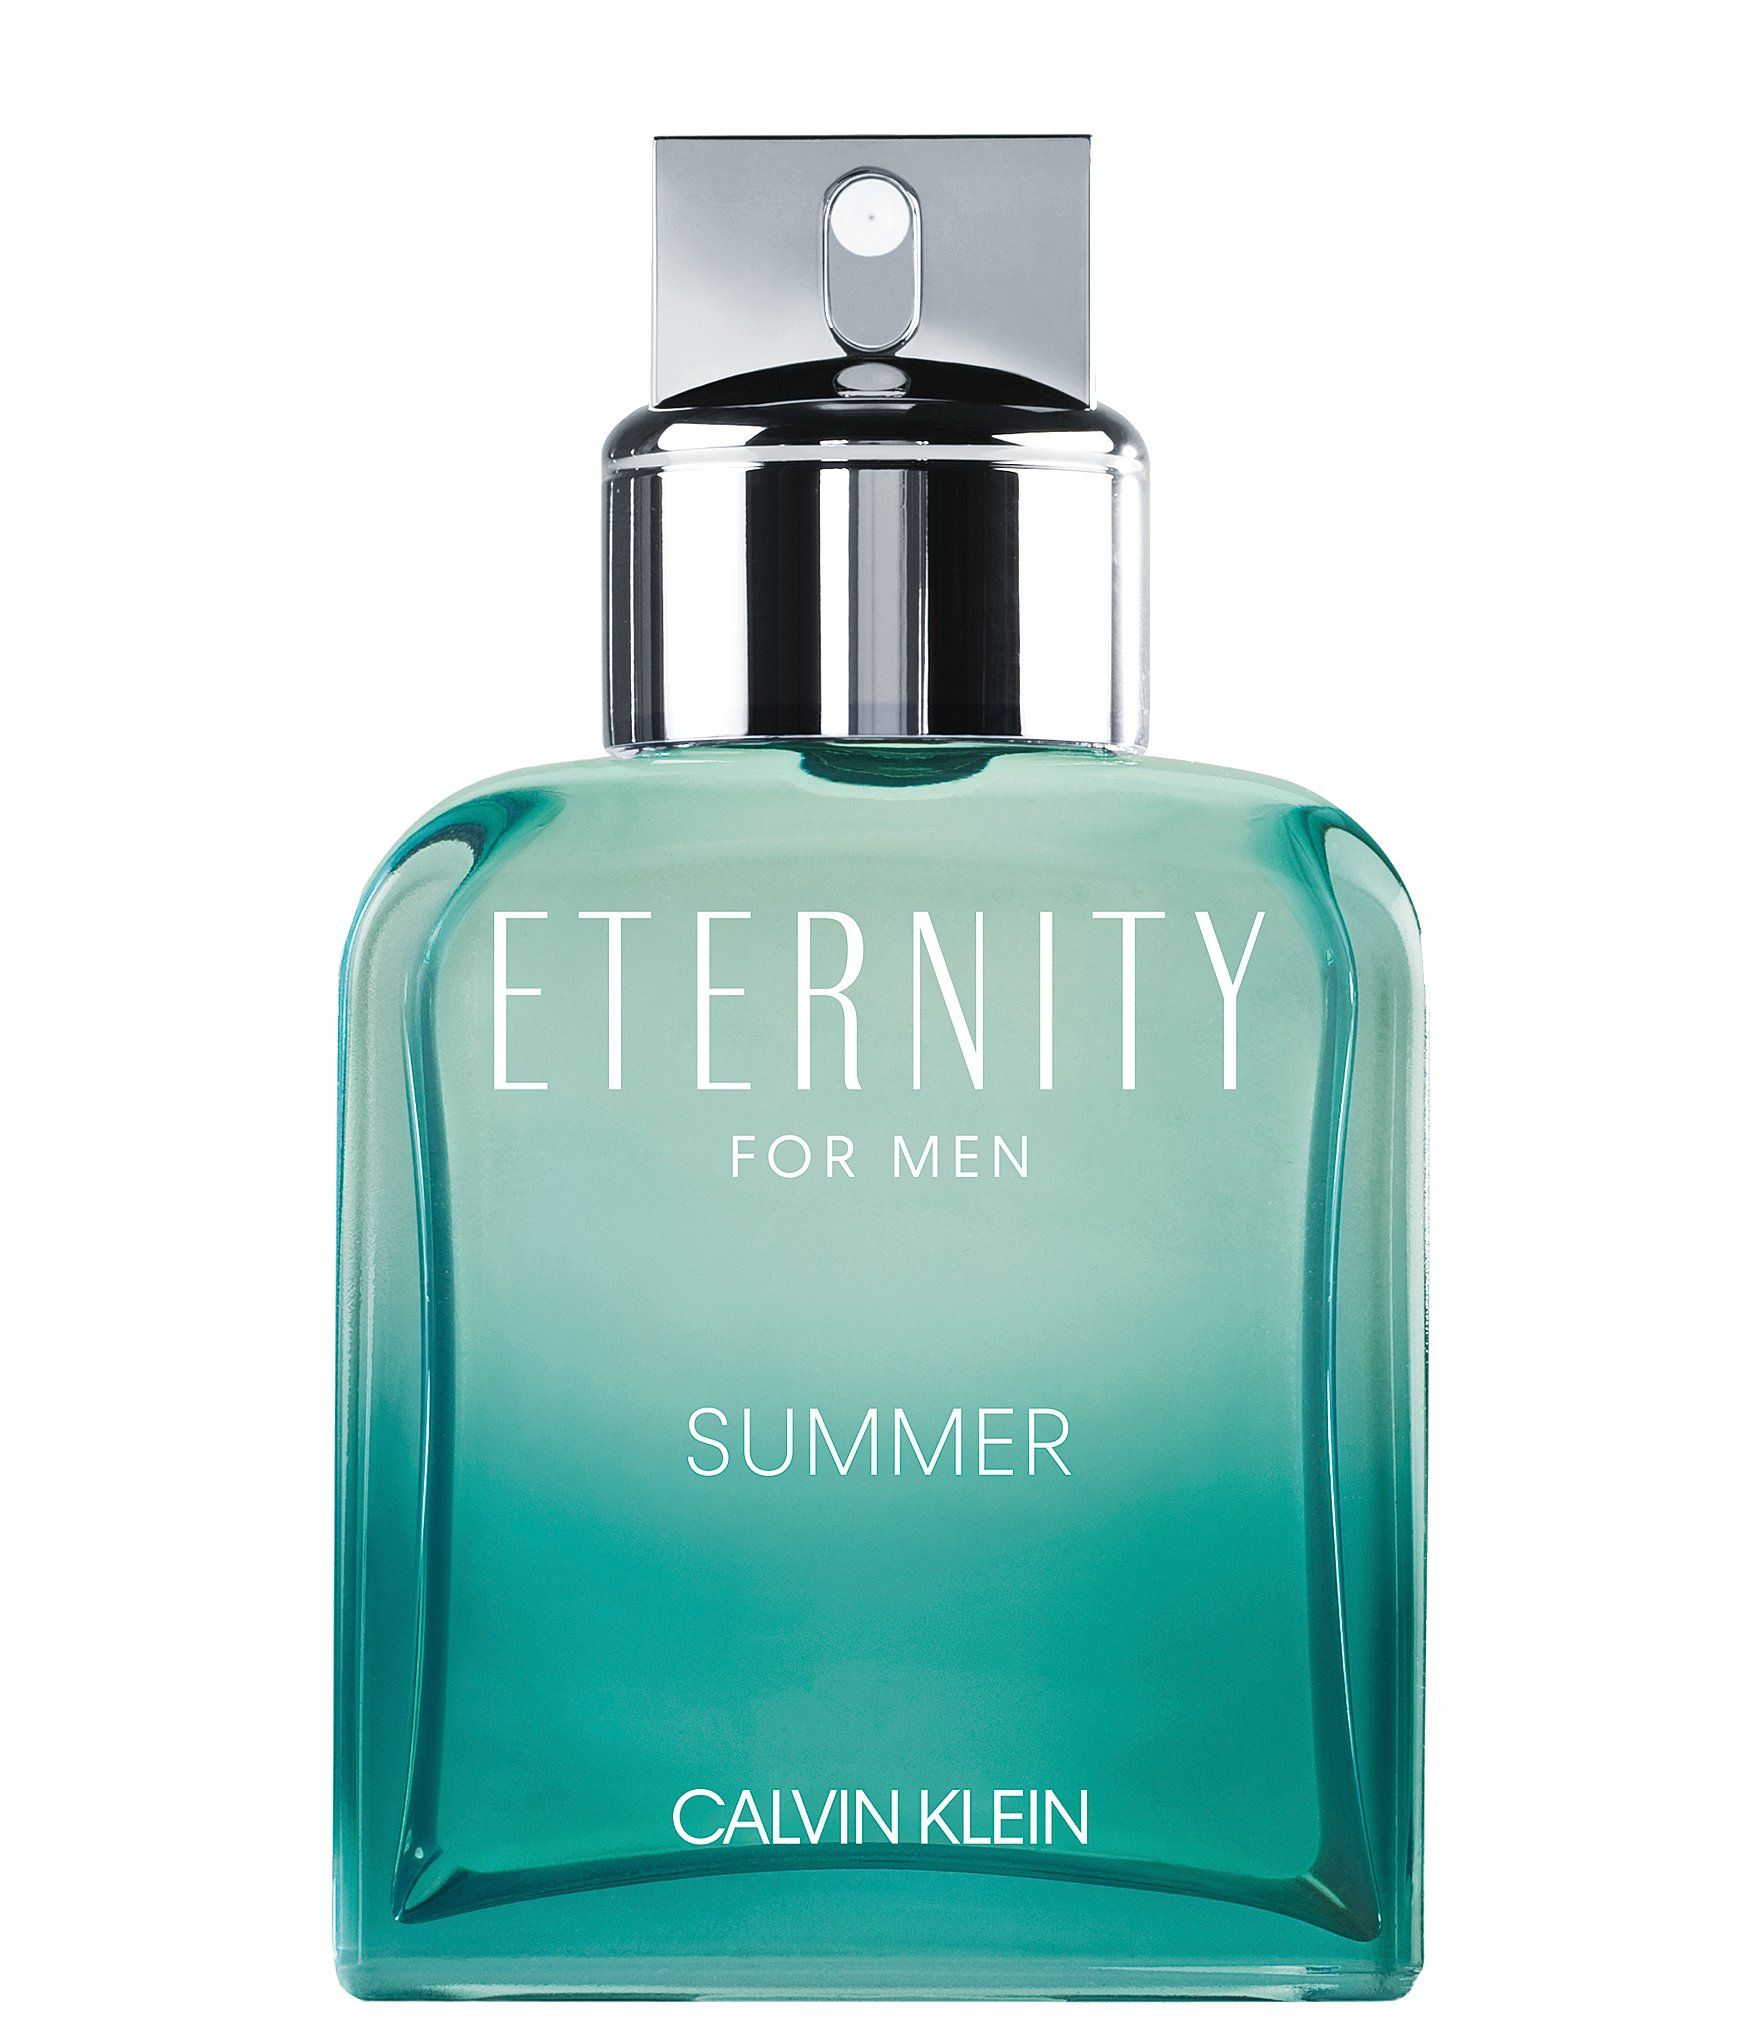 Calvin Klein Eternity Summer 2020 Eau De Toilette For Men Dillard S Calvin Klein Eternity Summer Eternity Summer Calvin Klein Perfume Eternity